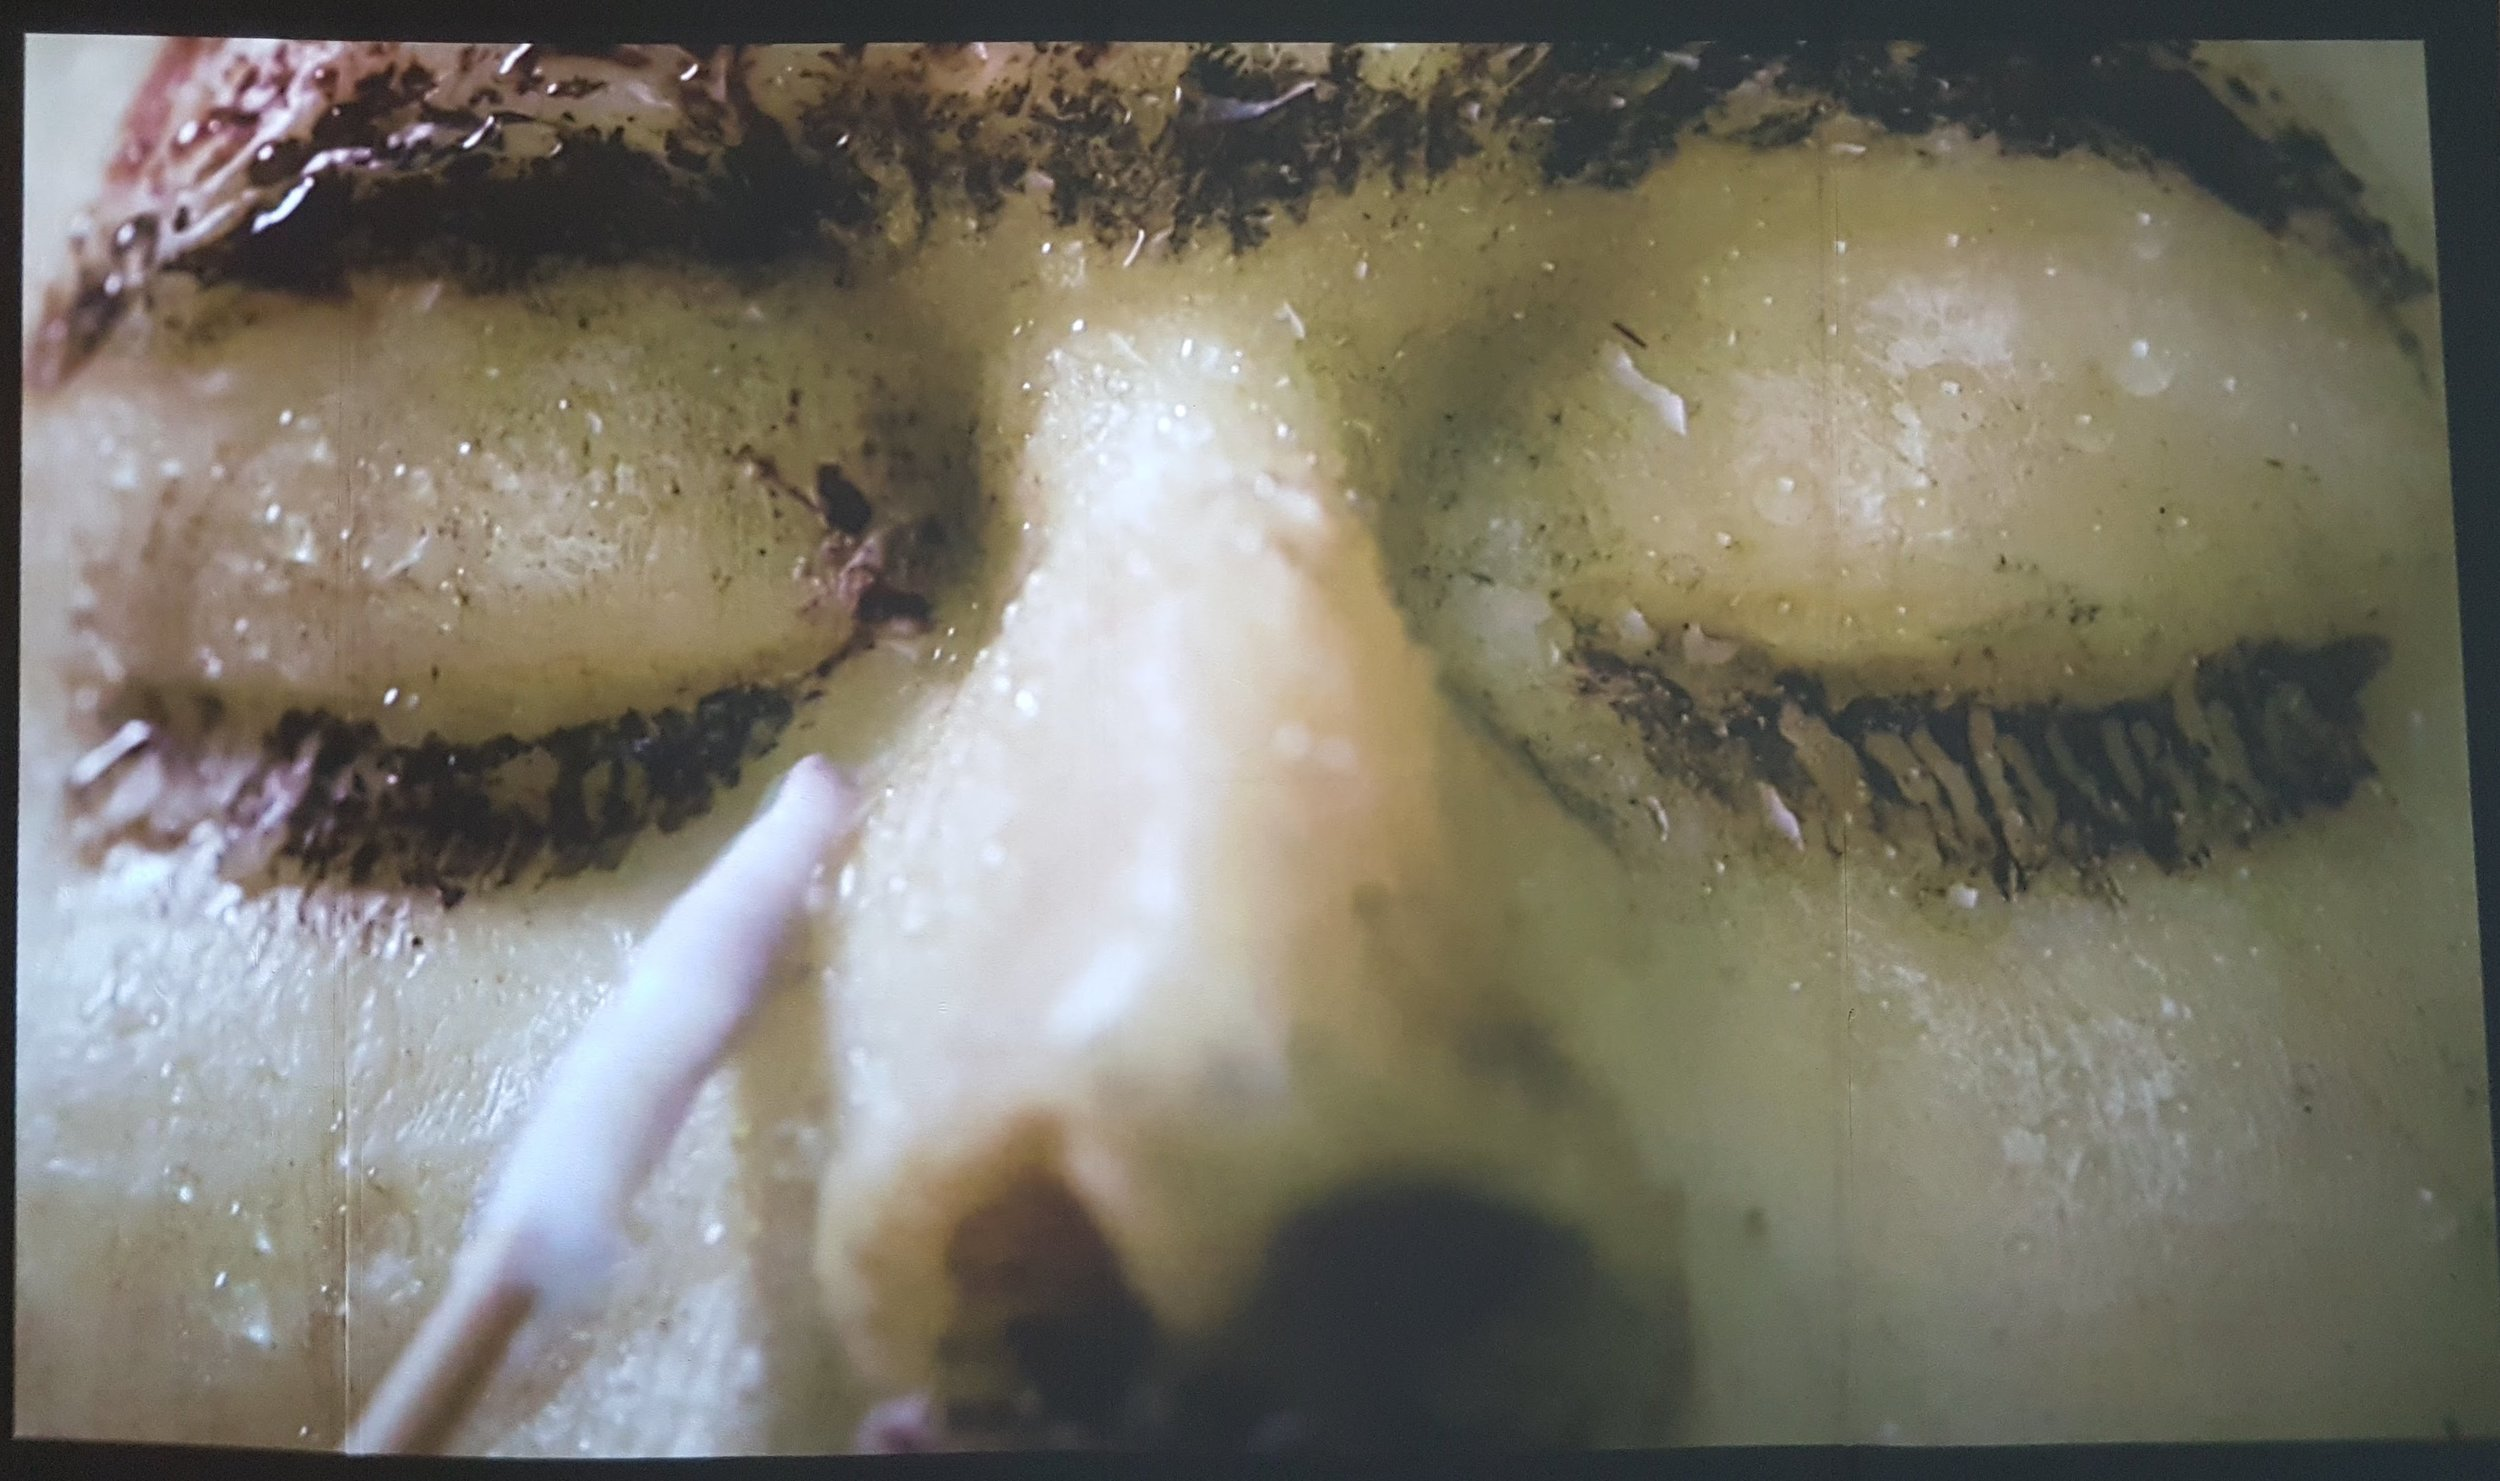 Carlos Motta,  Lagrimas, 2017,  16:9 HD, video, color, sound, 14:41m,  Exquisite Corpse: Moving Image in Latin American and Asian Art.  Mana Wynwood. Photo courtesy of the writer.